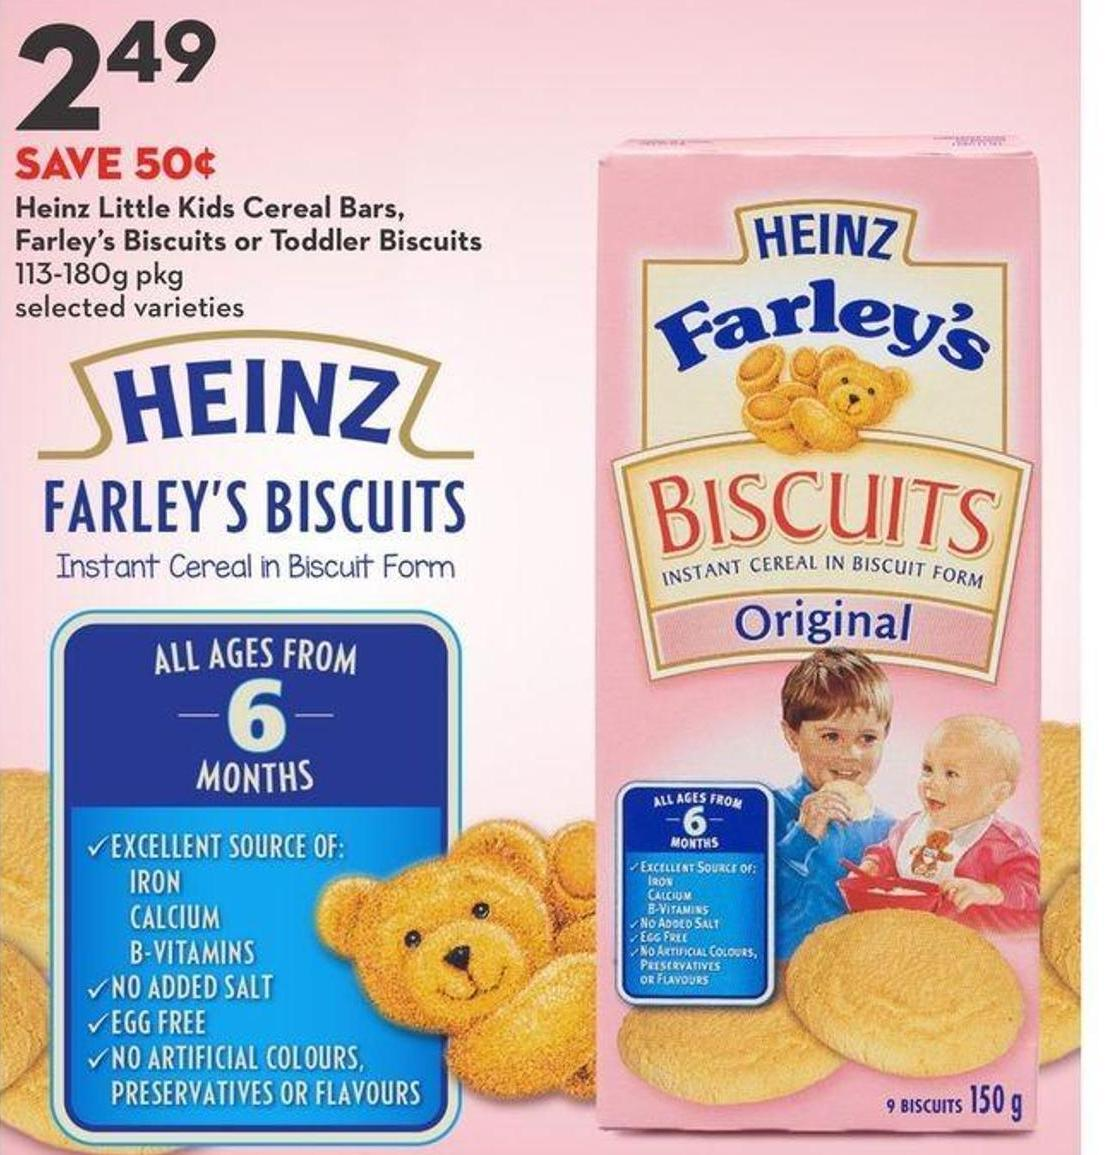 Heinz Little Kids Cereal Bars - Farley's Biscuits or Toddler Biscuits